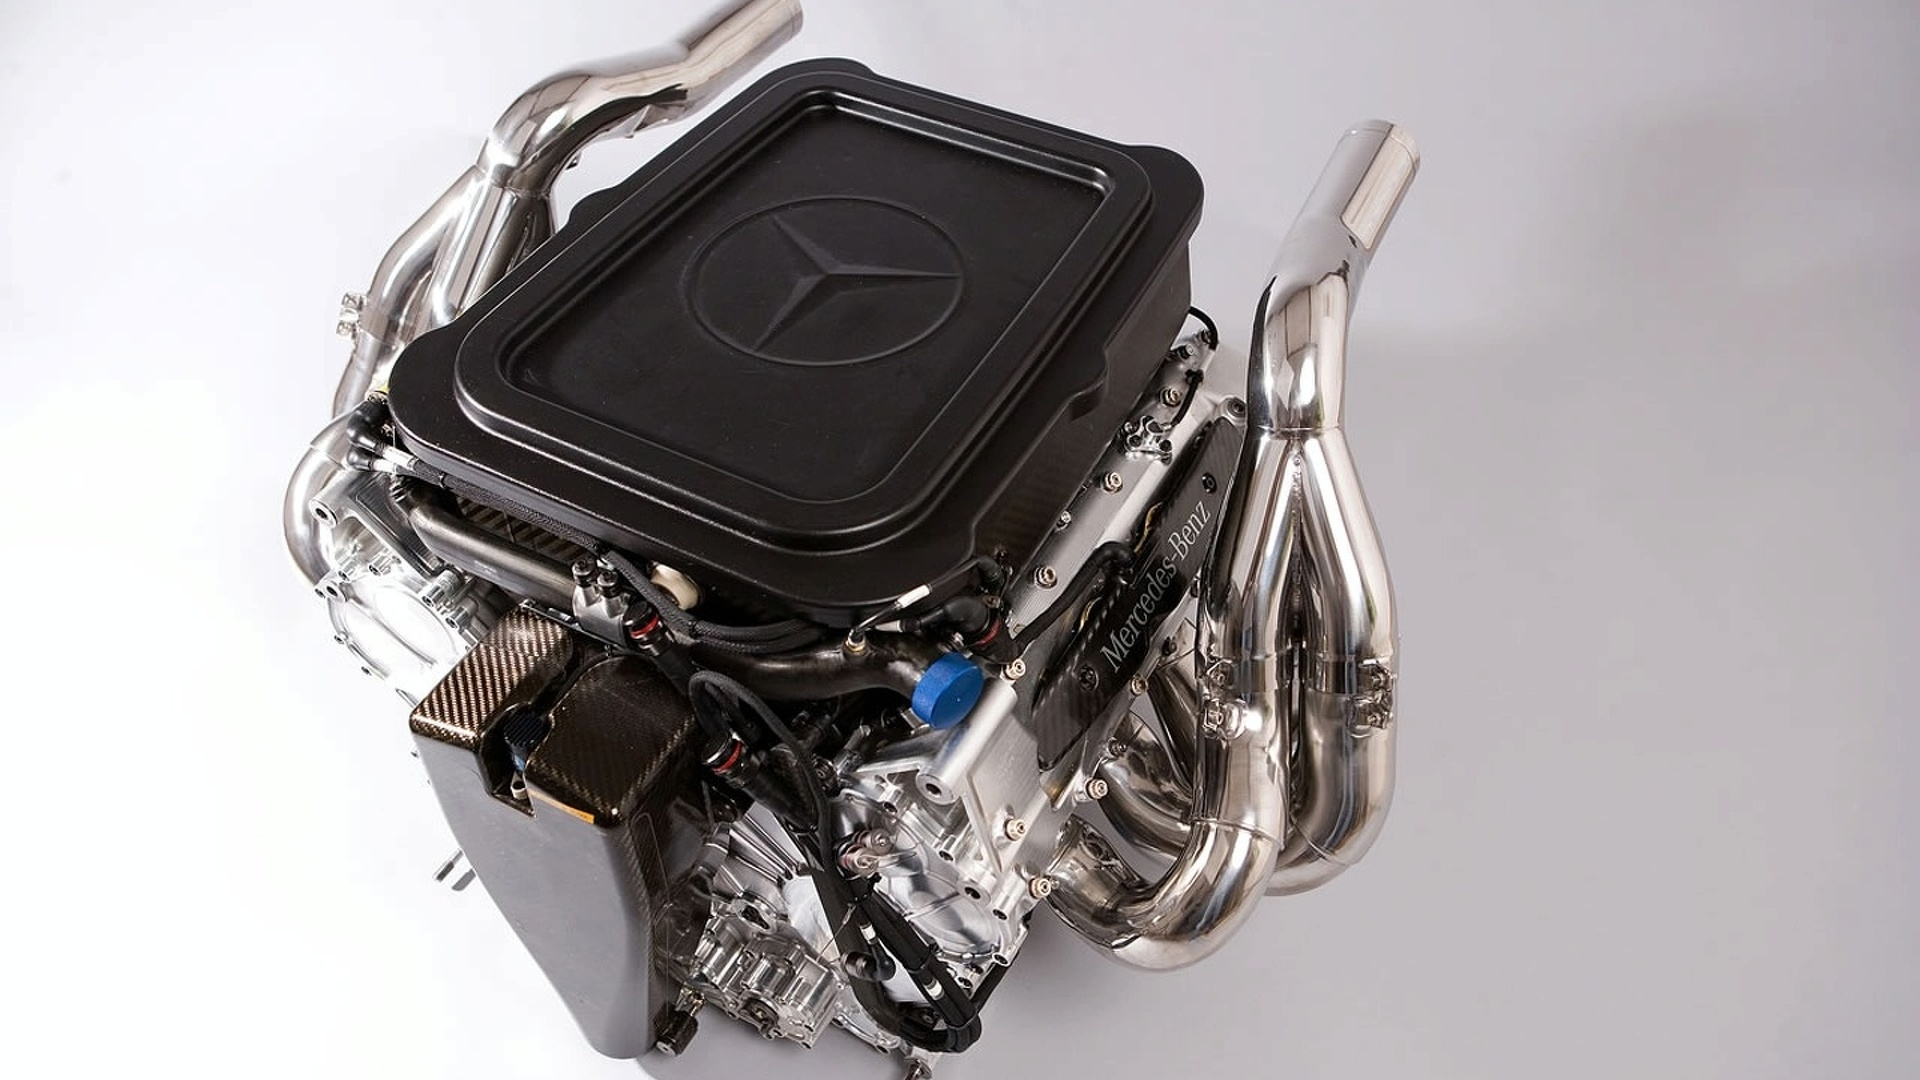 Mercedes eyes Monza for engine deals clarity